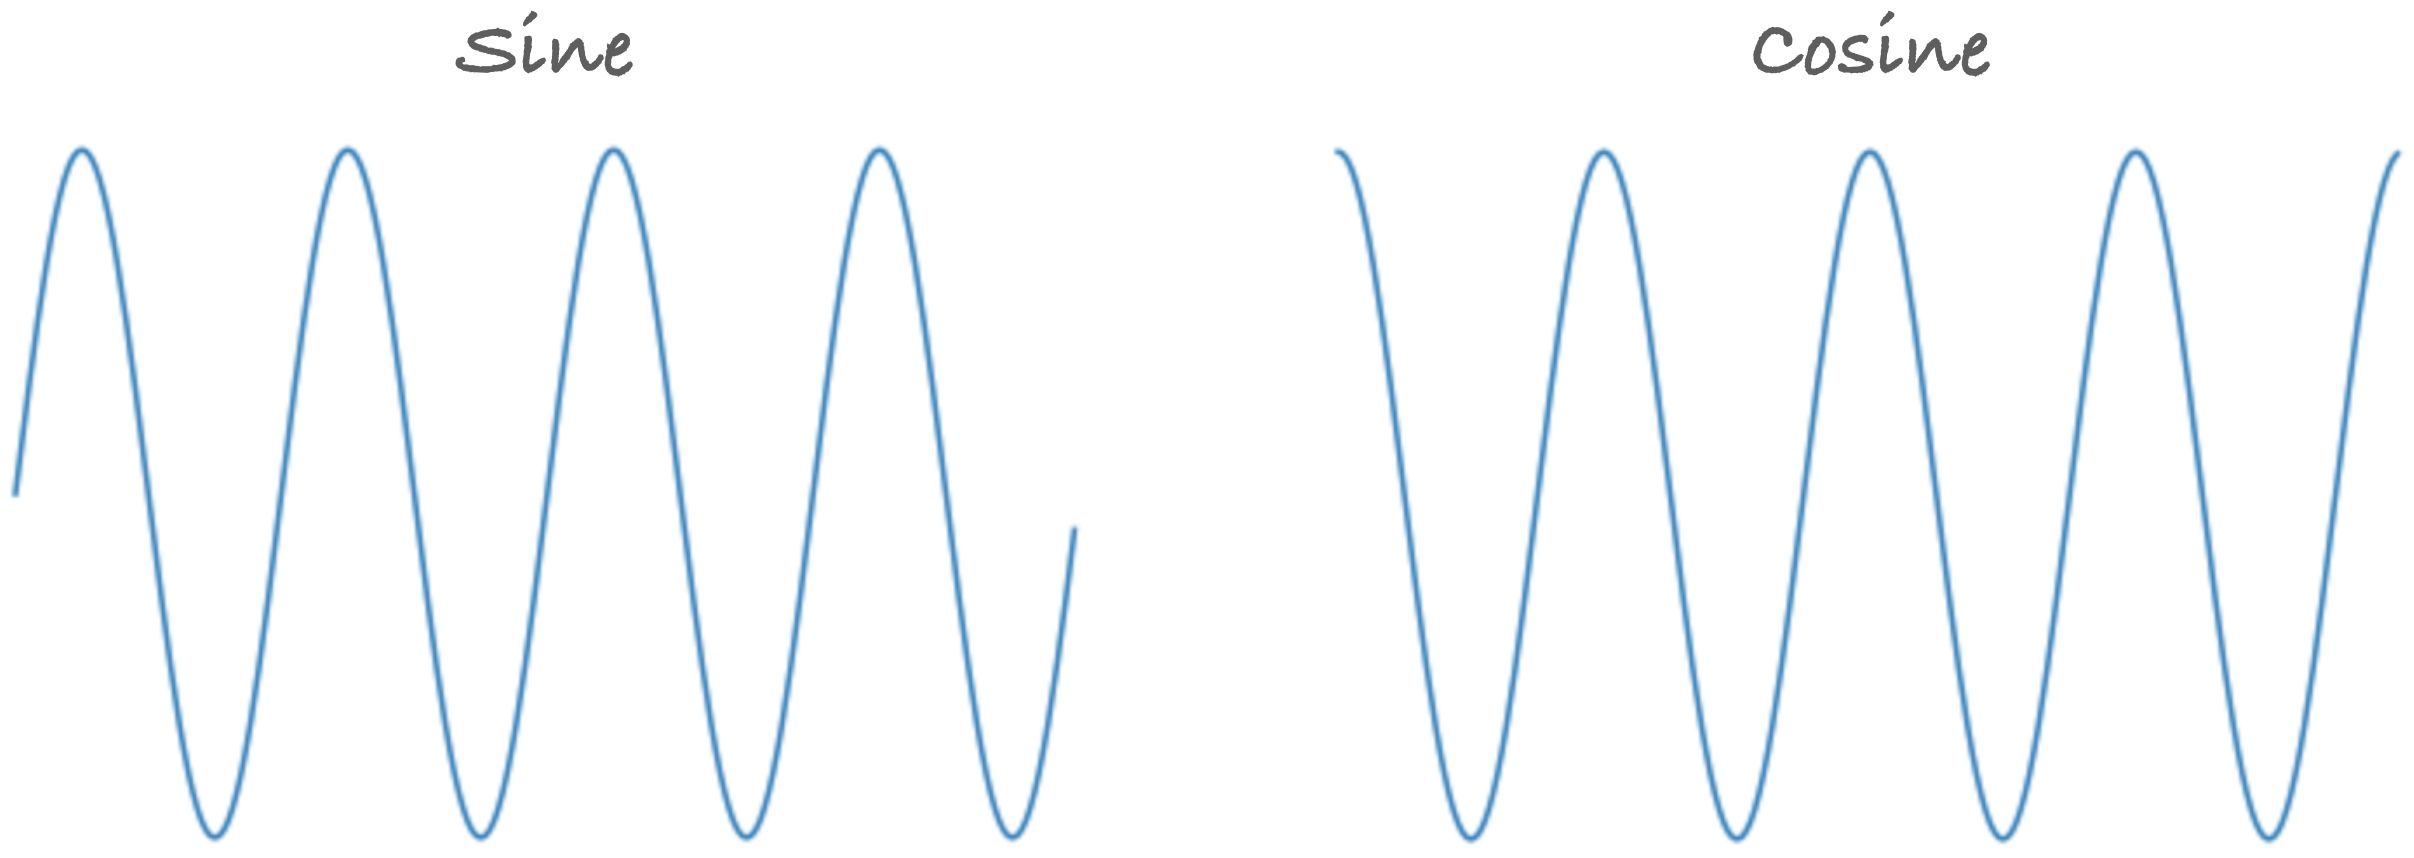 A sine and a cosine wave.